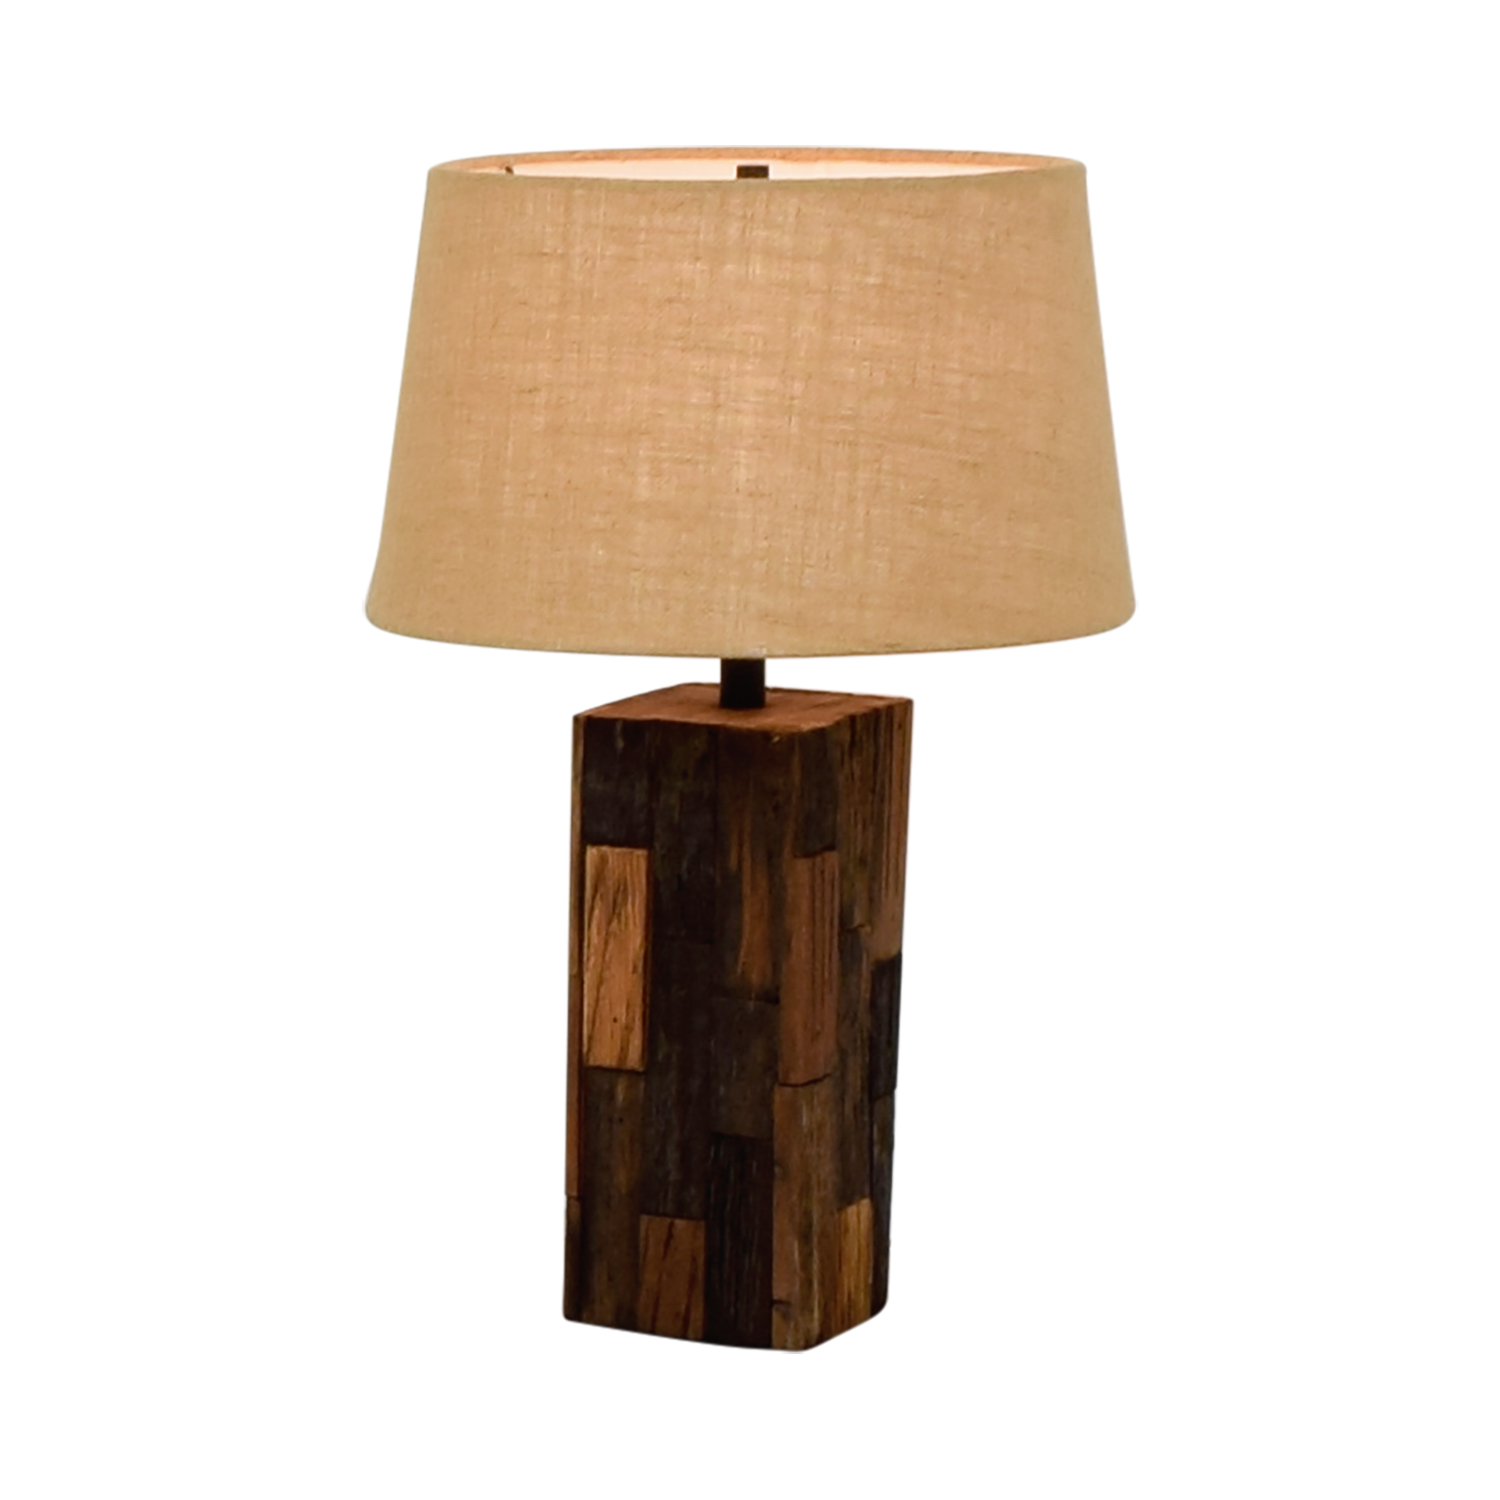 Wooden Table Lamps Designs 47 Off Ashley Furniture Ashley Furniture Selemah Wood